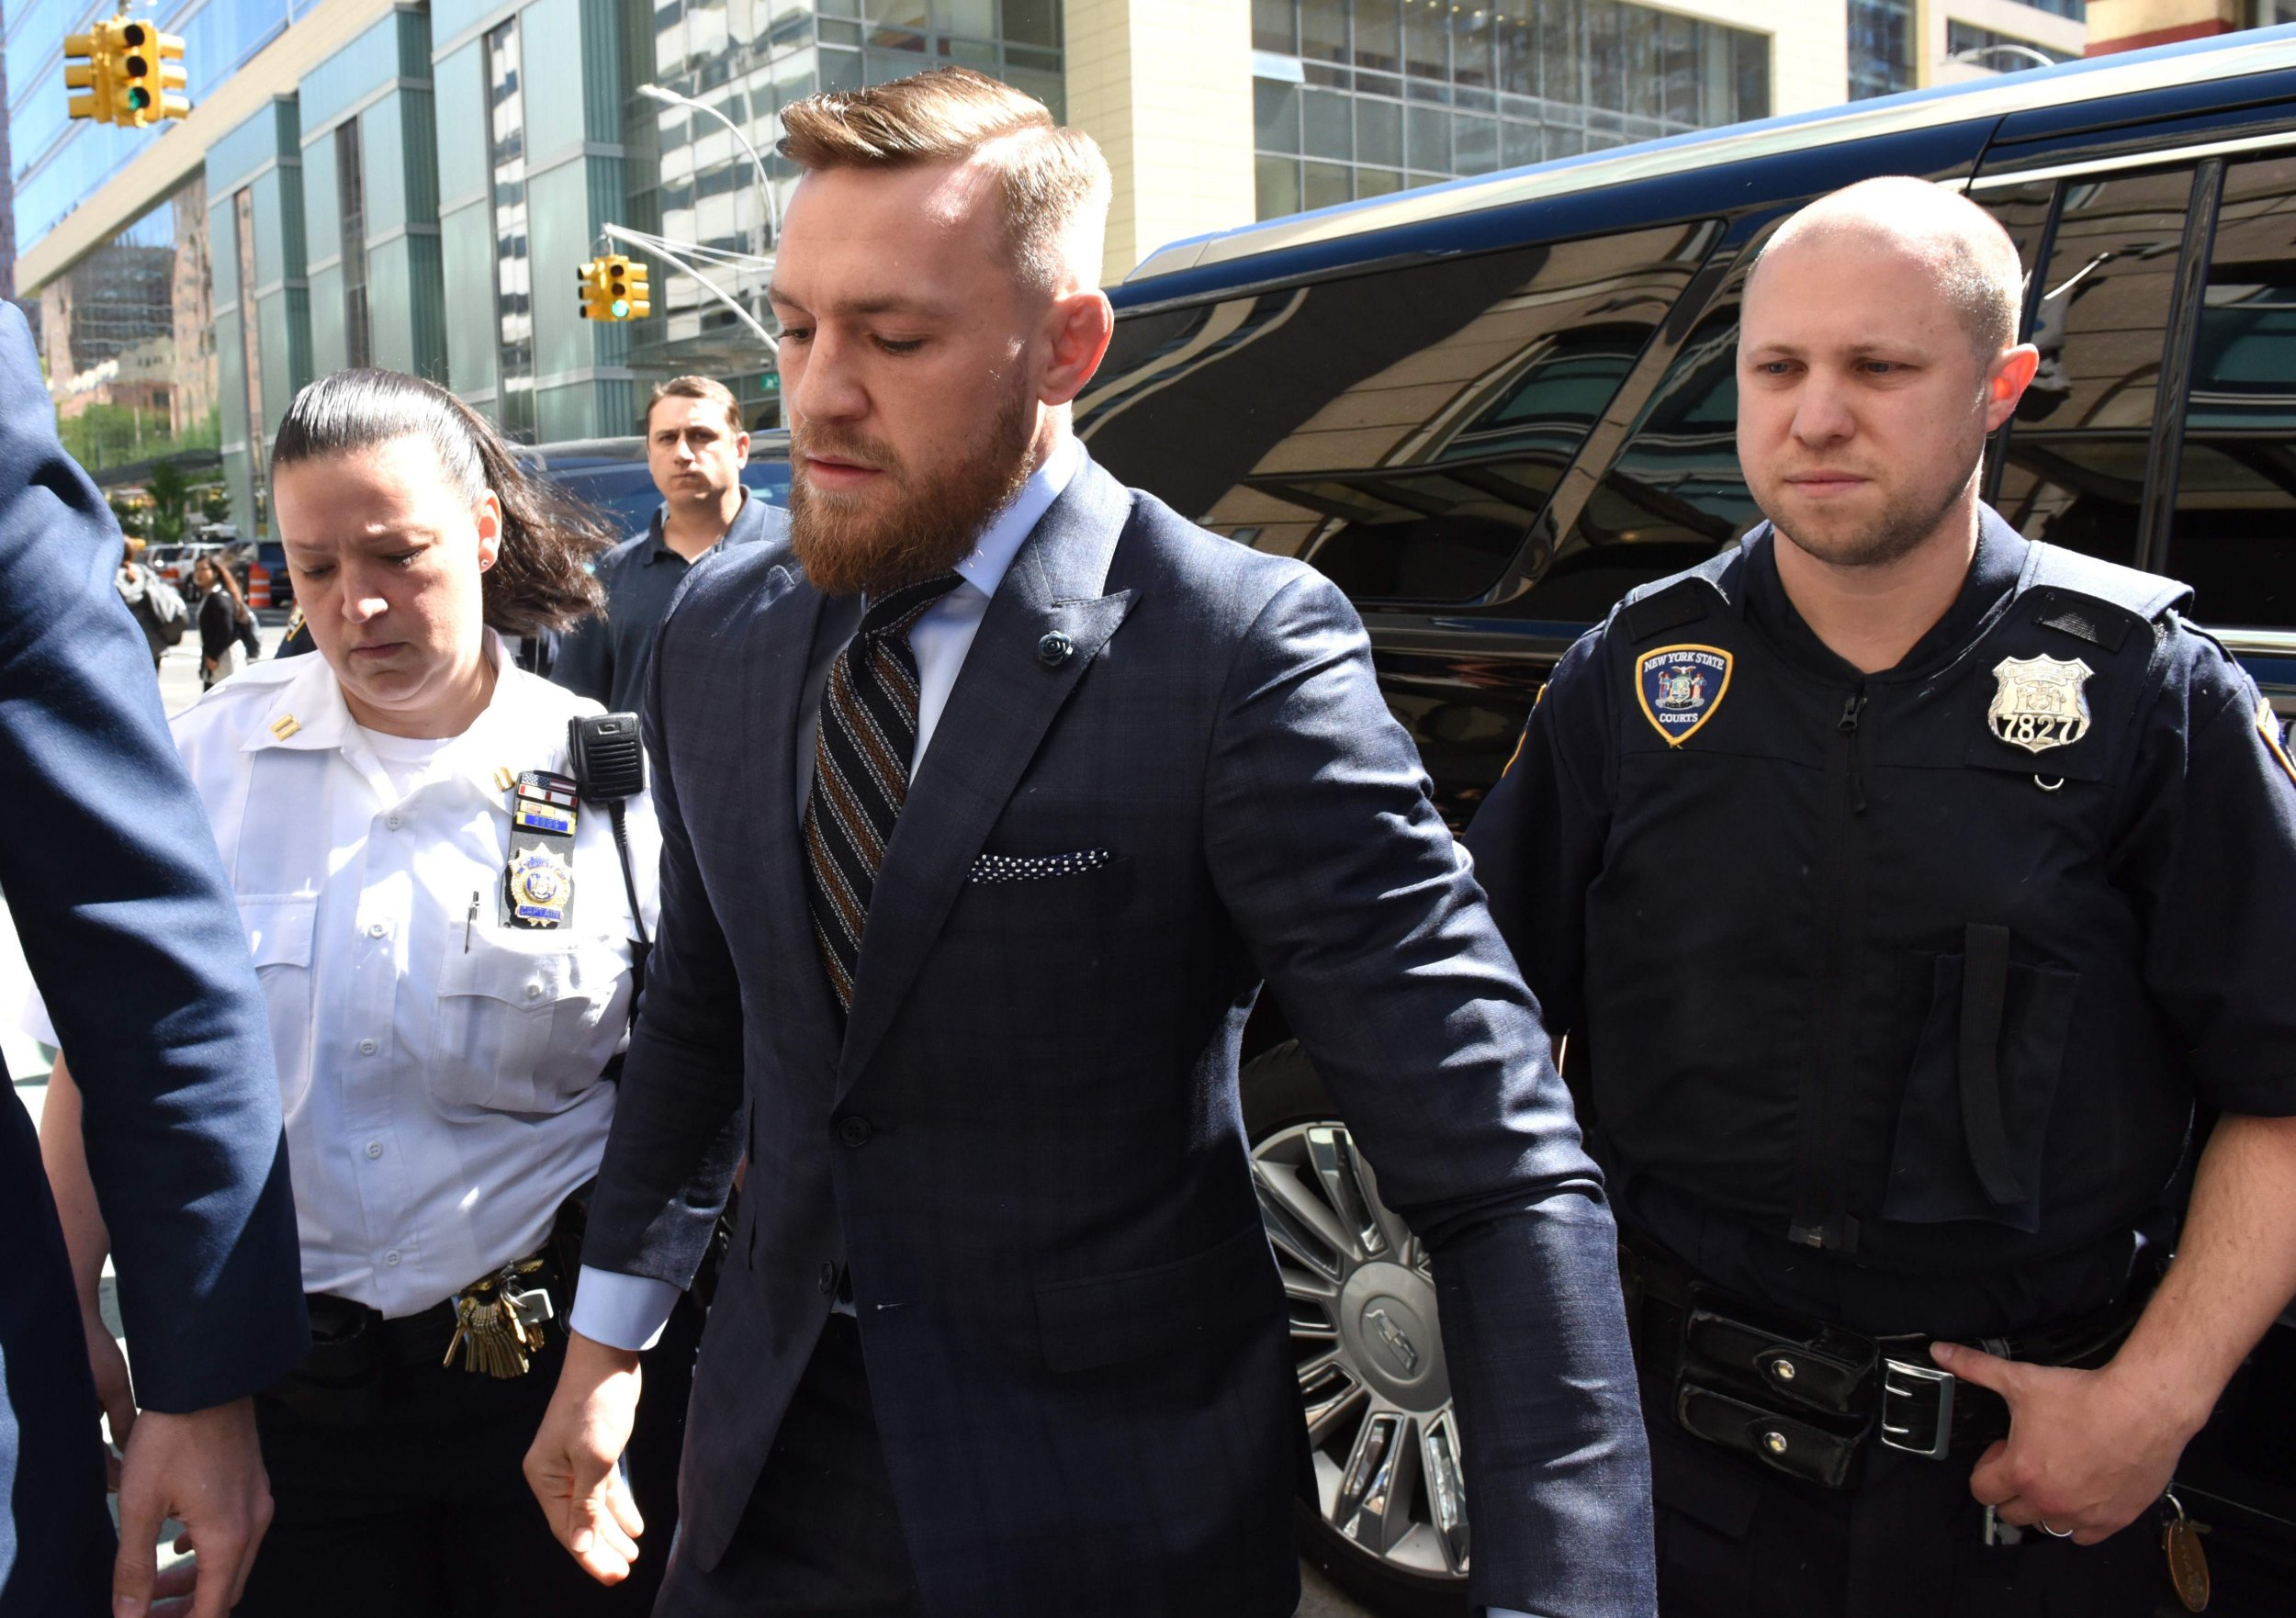 Mixed martial arts fighter Conor McGregor arrives at Brooklyn Supreme courtin New York on June 14, 2018, stemming from his April attack on a bus at Barclays Center. / AFP PHOTO / TIMOTHY A. CLARYTIMOTHY A. CLARY/AFP/Getty Images